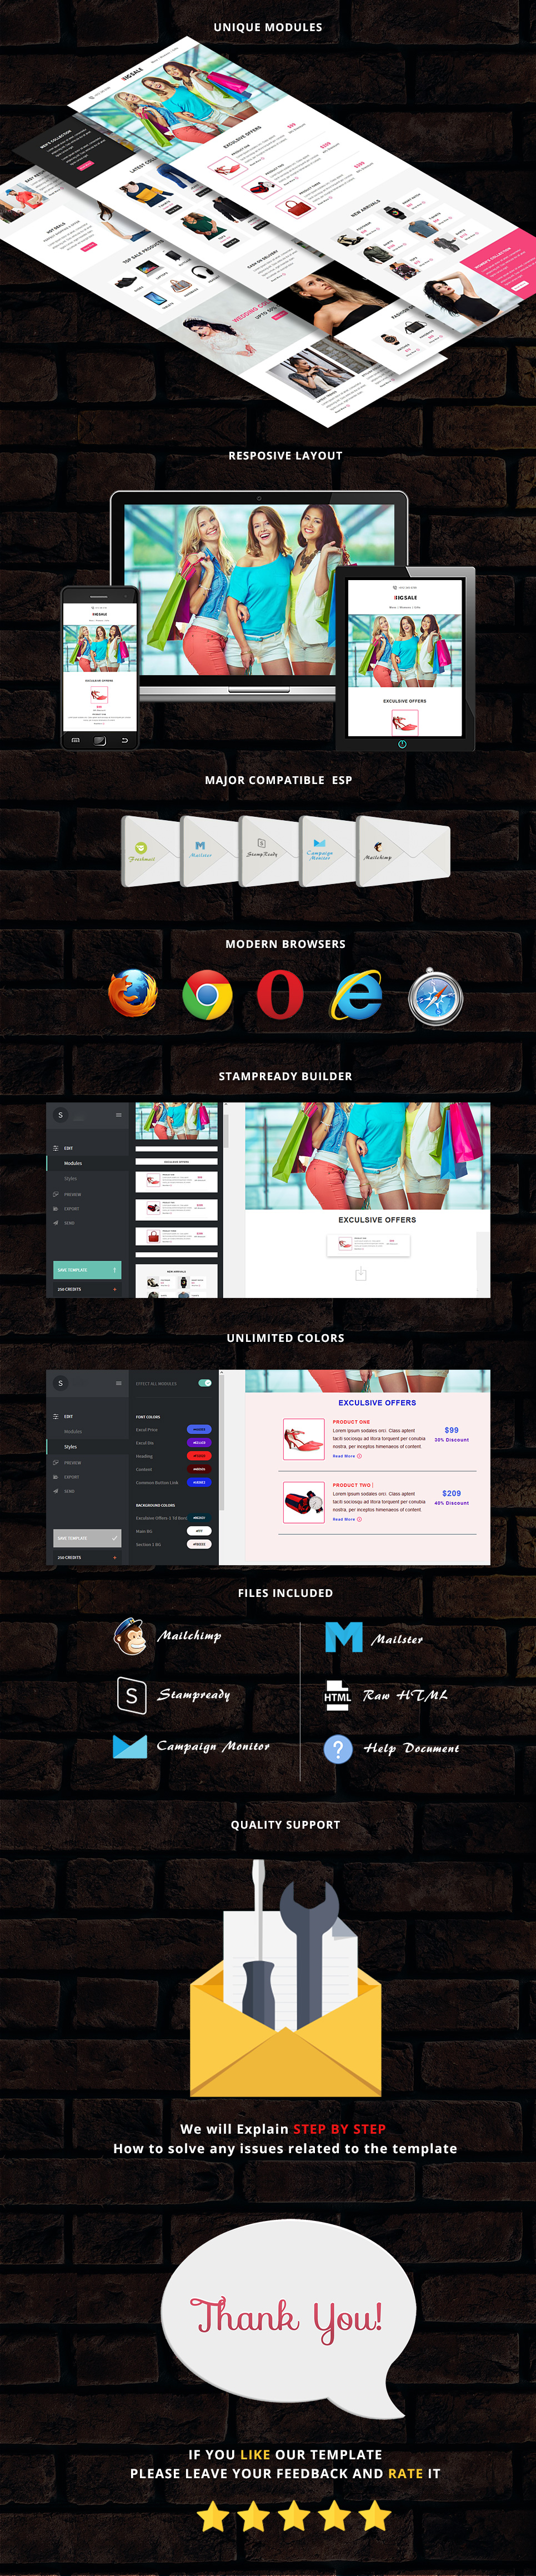 BigSale - Responsive Email Template + Stampready Builder